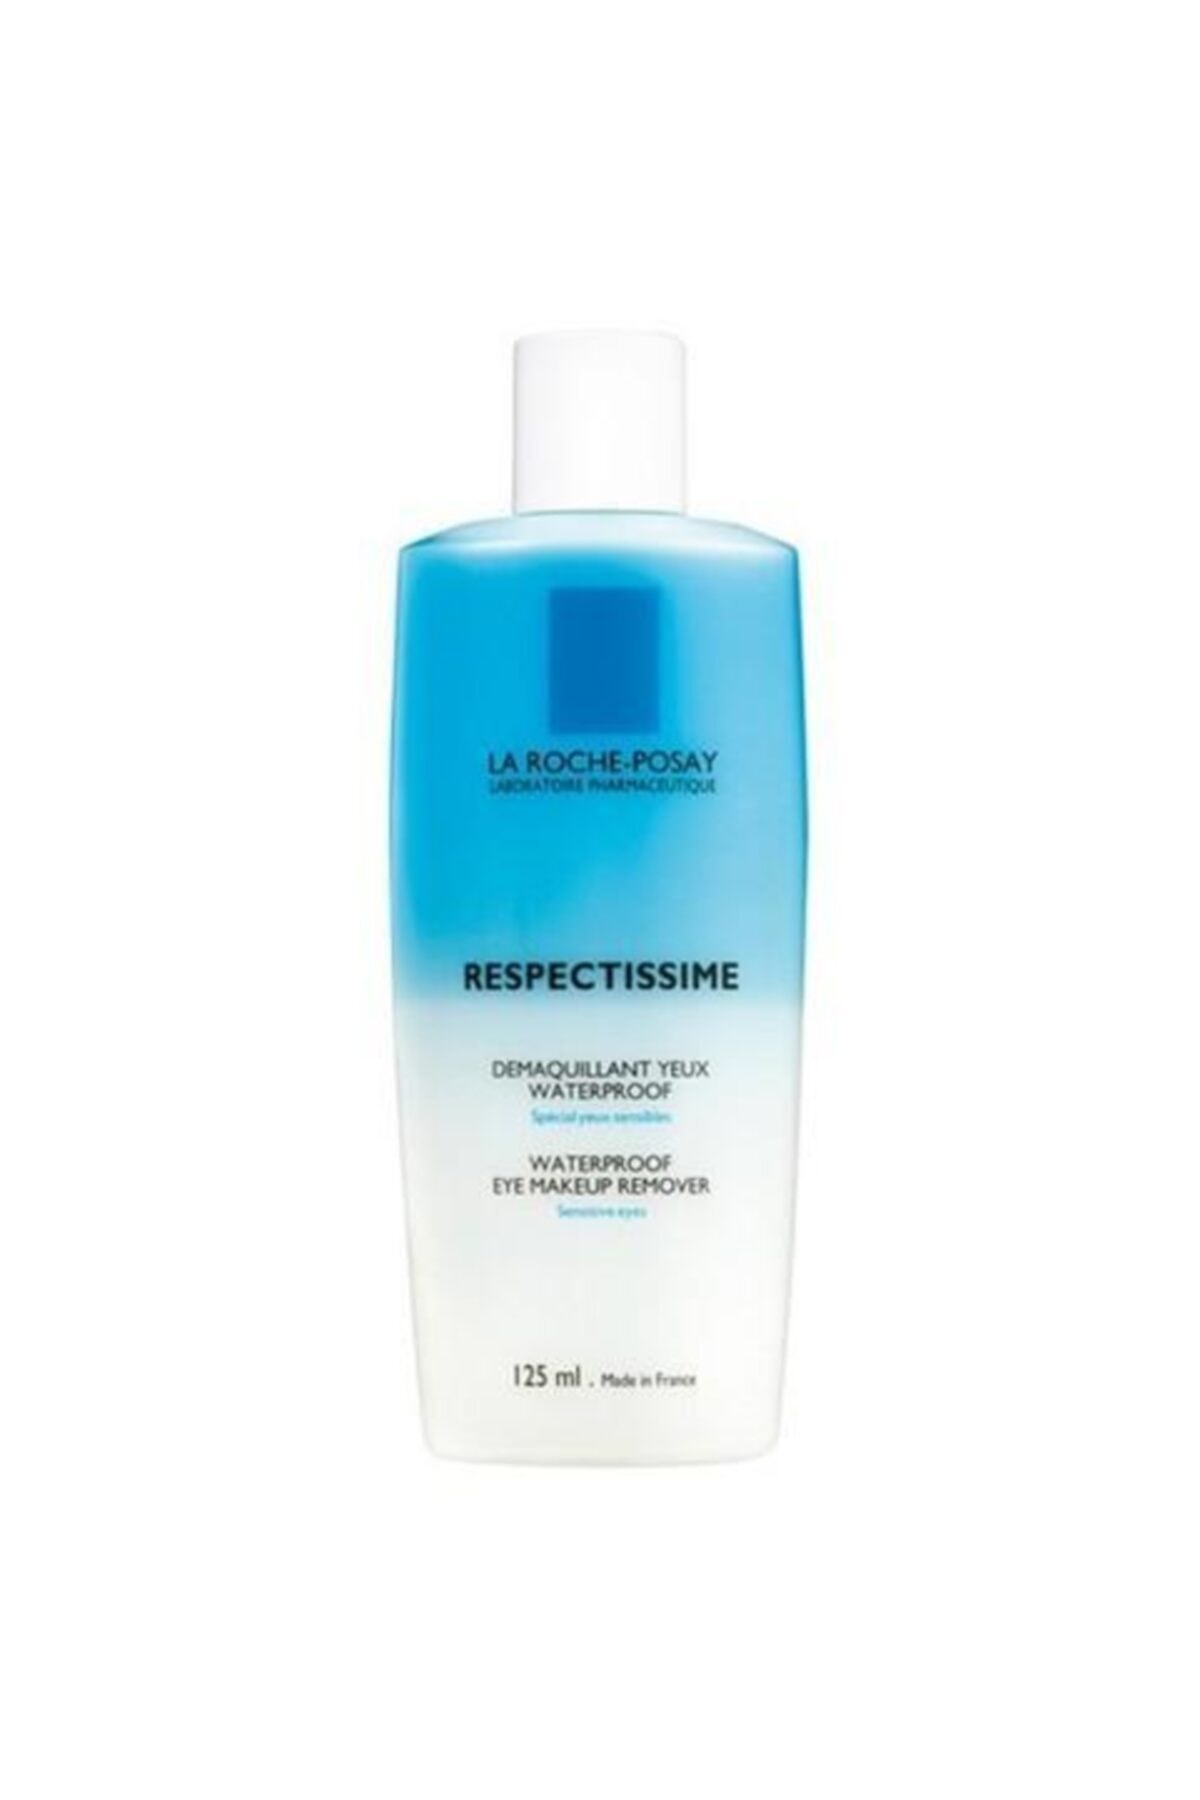 La Roche Posay Posay Respectissime Demaquillant Yeux Waterproof 125 ml 1